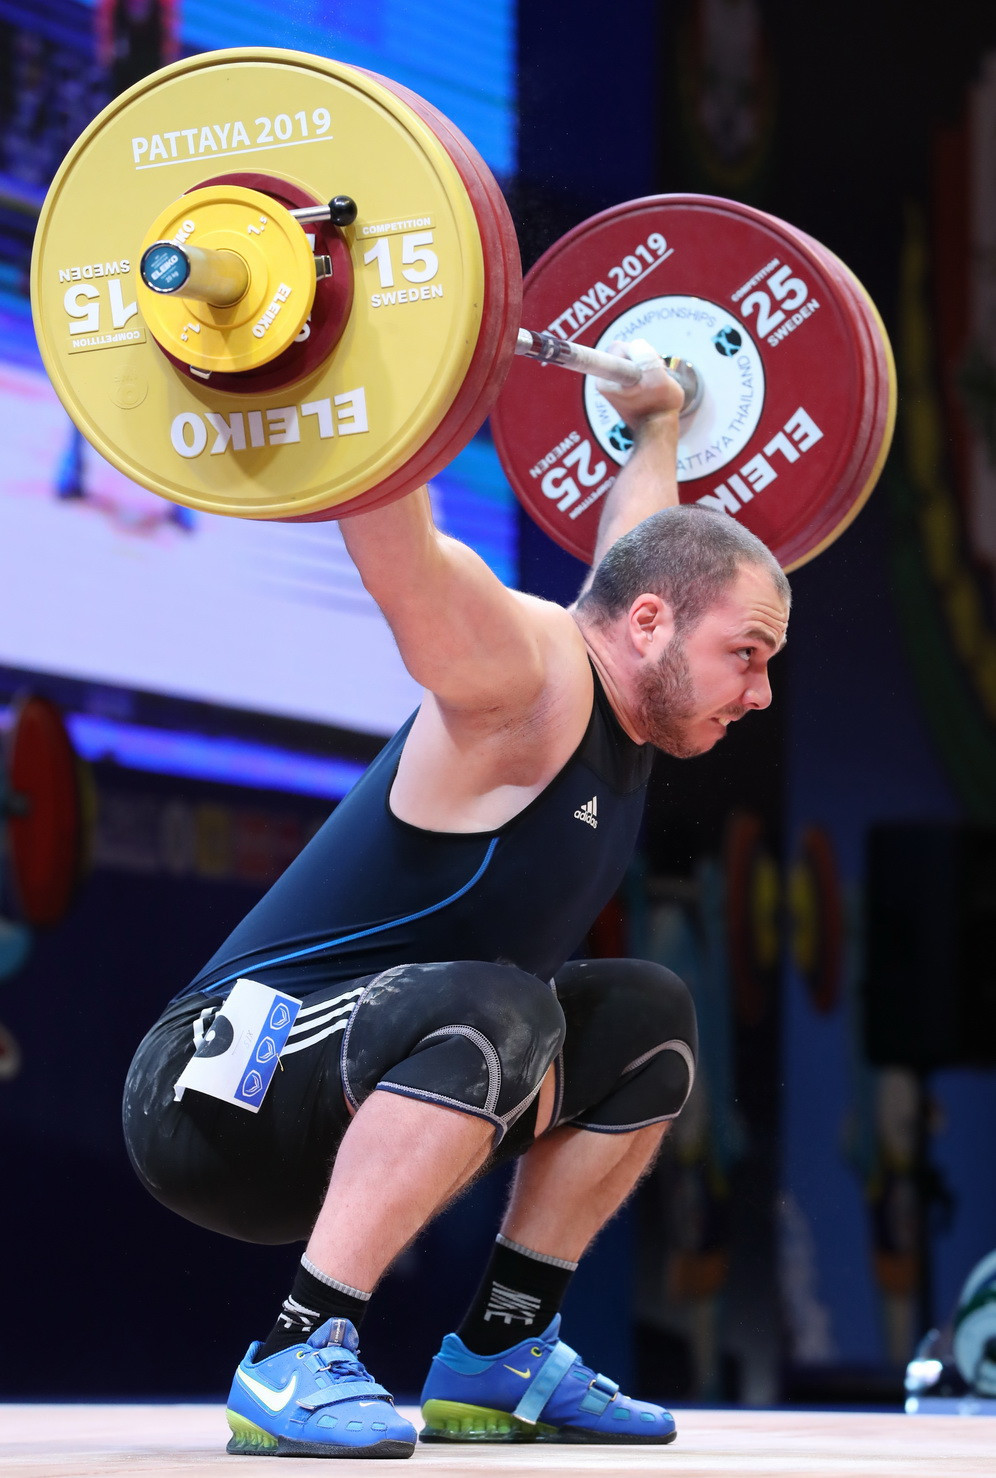 Armenia's Hakob Mkrtchyan triumphed overall in a highly-competitive men's 89kg event ©IWF